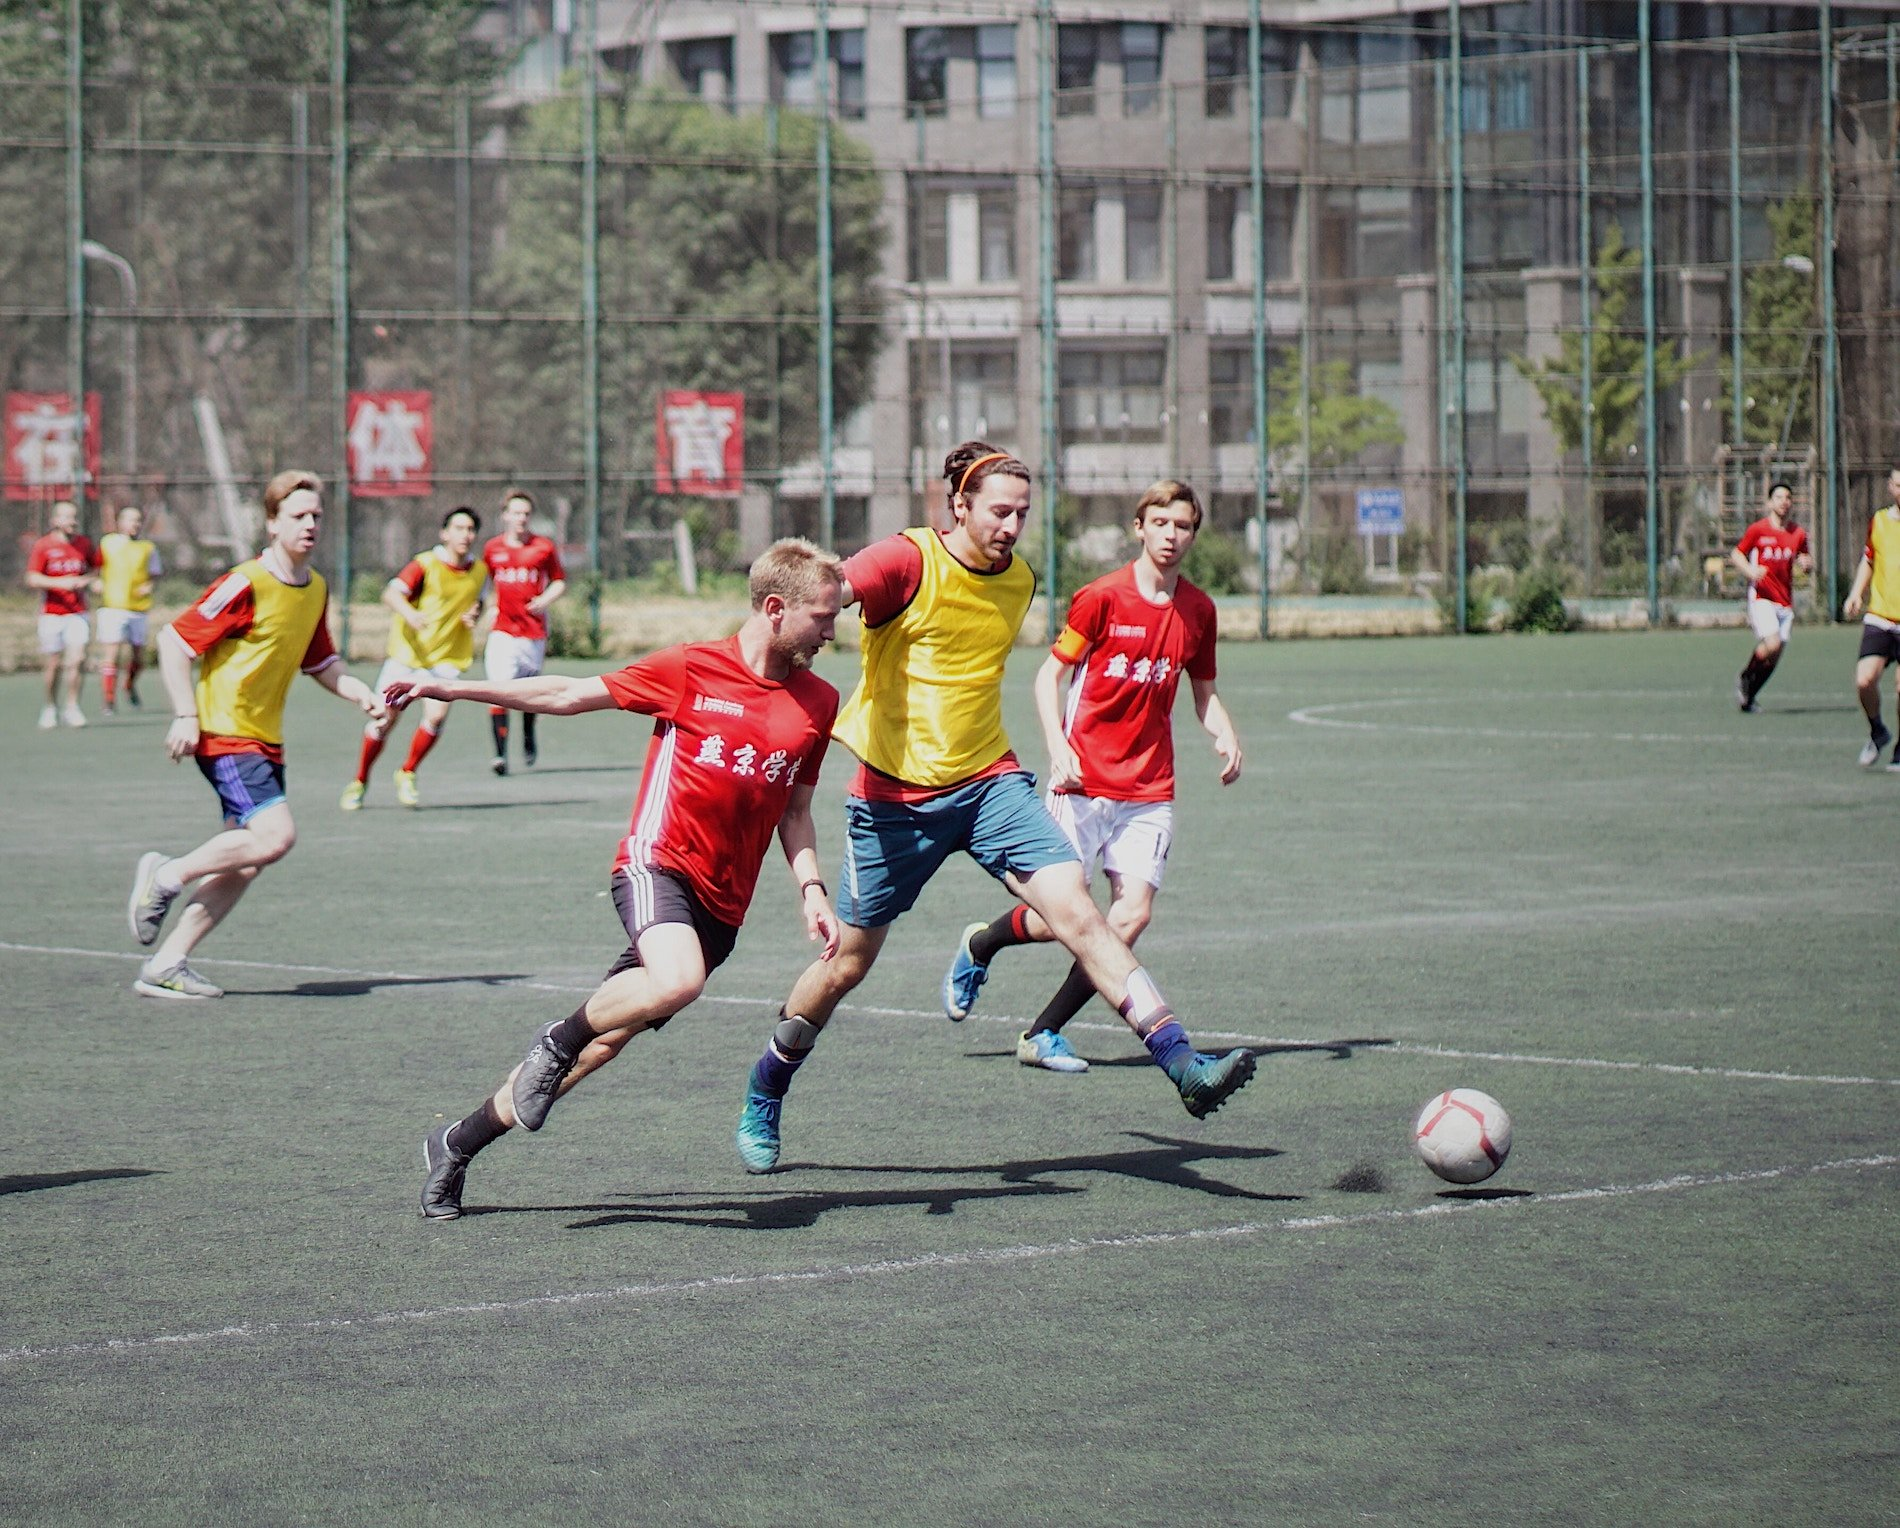 Three men- two of which are in red, the other in yellow - wearing soccer clothing with Chinese or Japanese kanji on it.